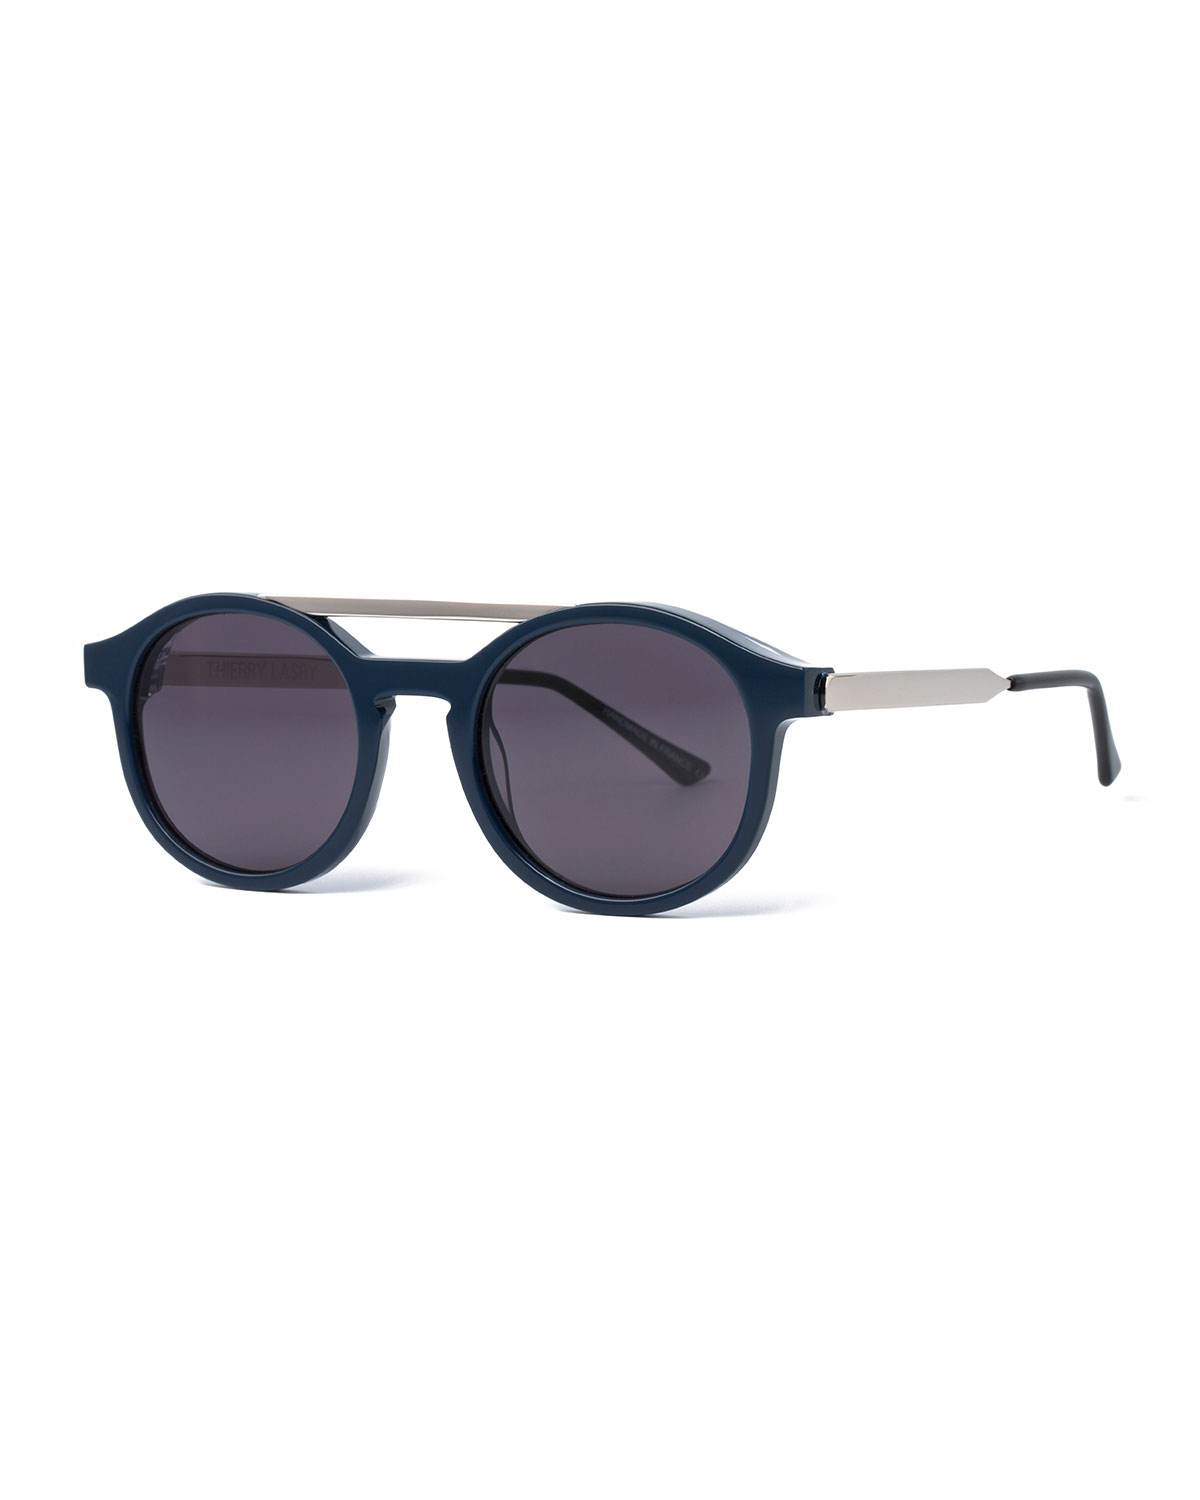 Thierry Lasry FANCY ROUND BROW-BAR SUNGLASSES, BLUE